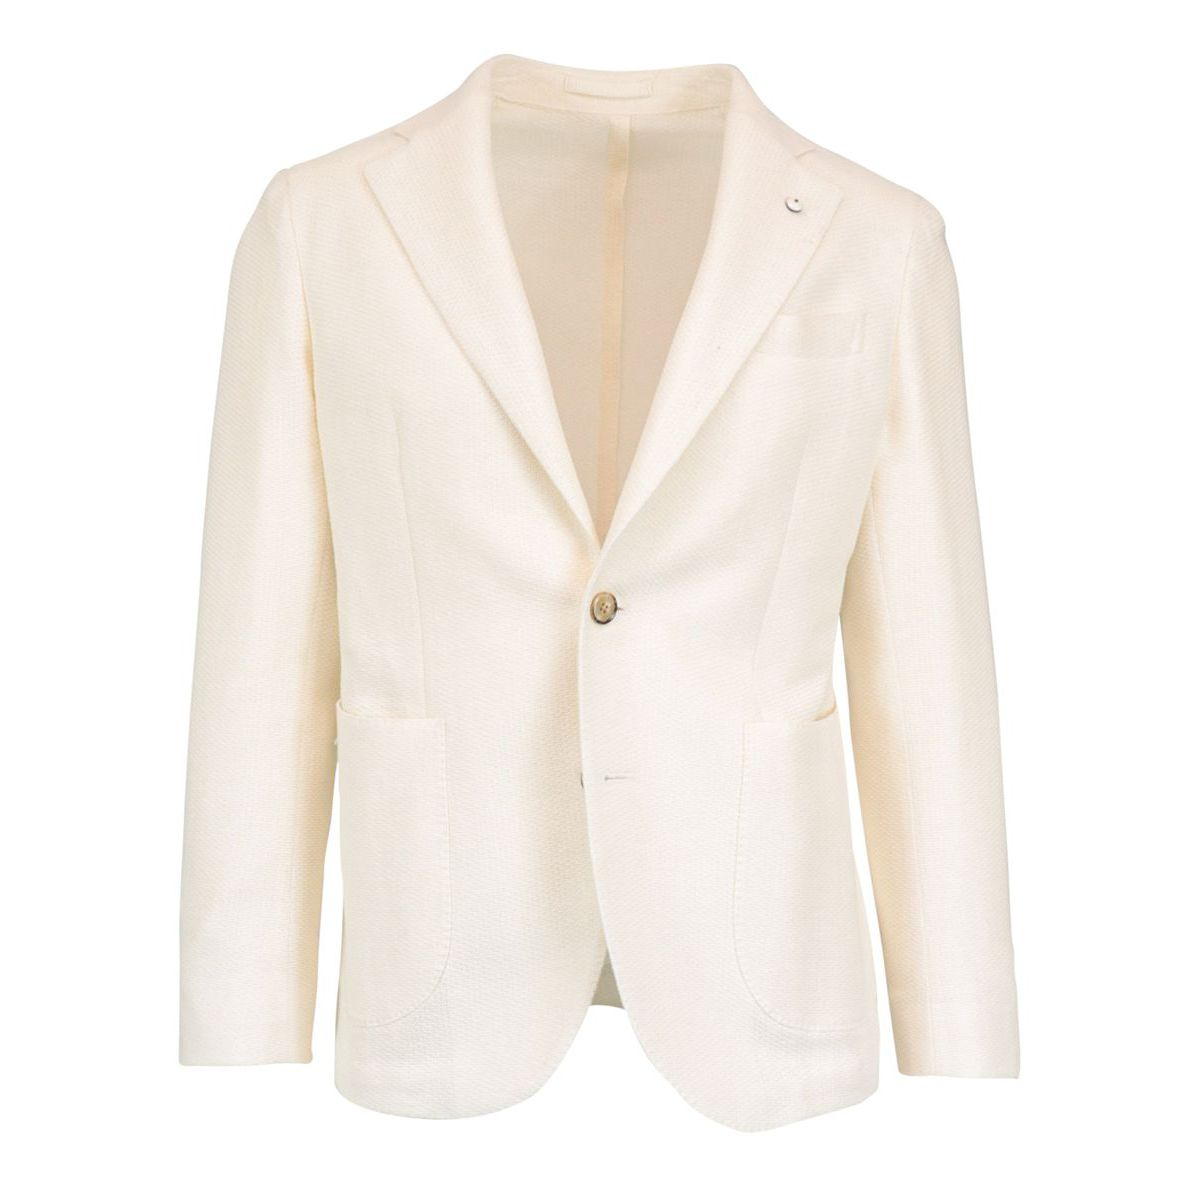 Two-button slim jacket in cotton and linen Cream L.B.M. 1911